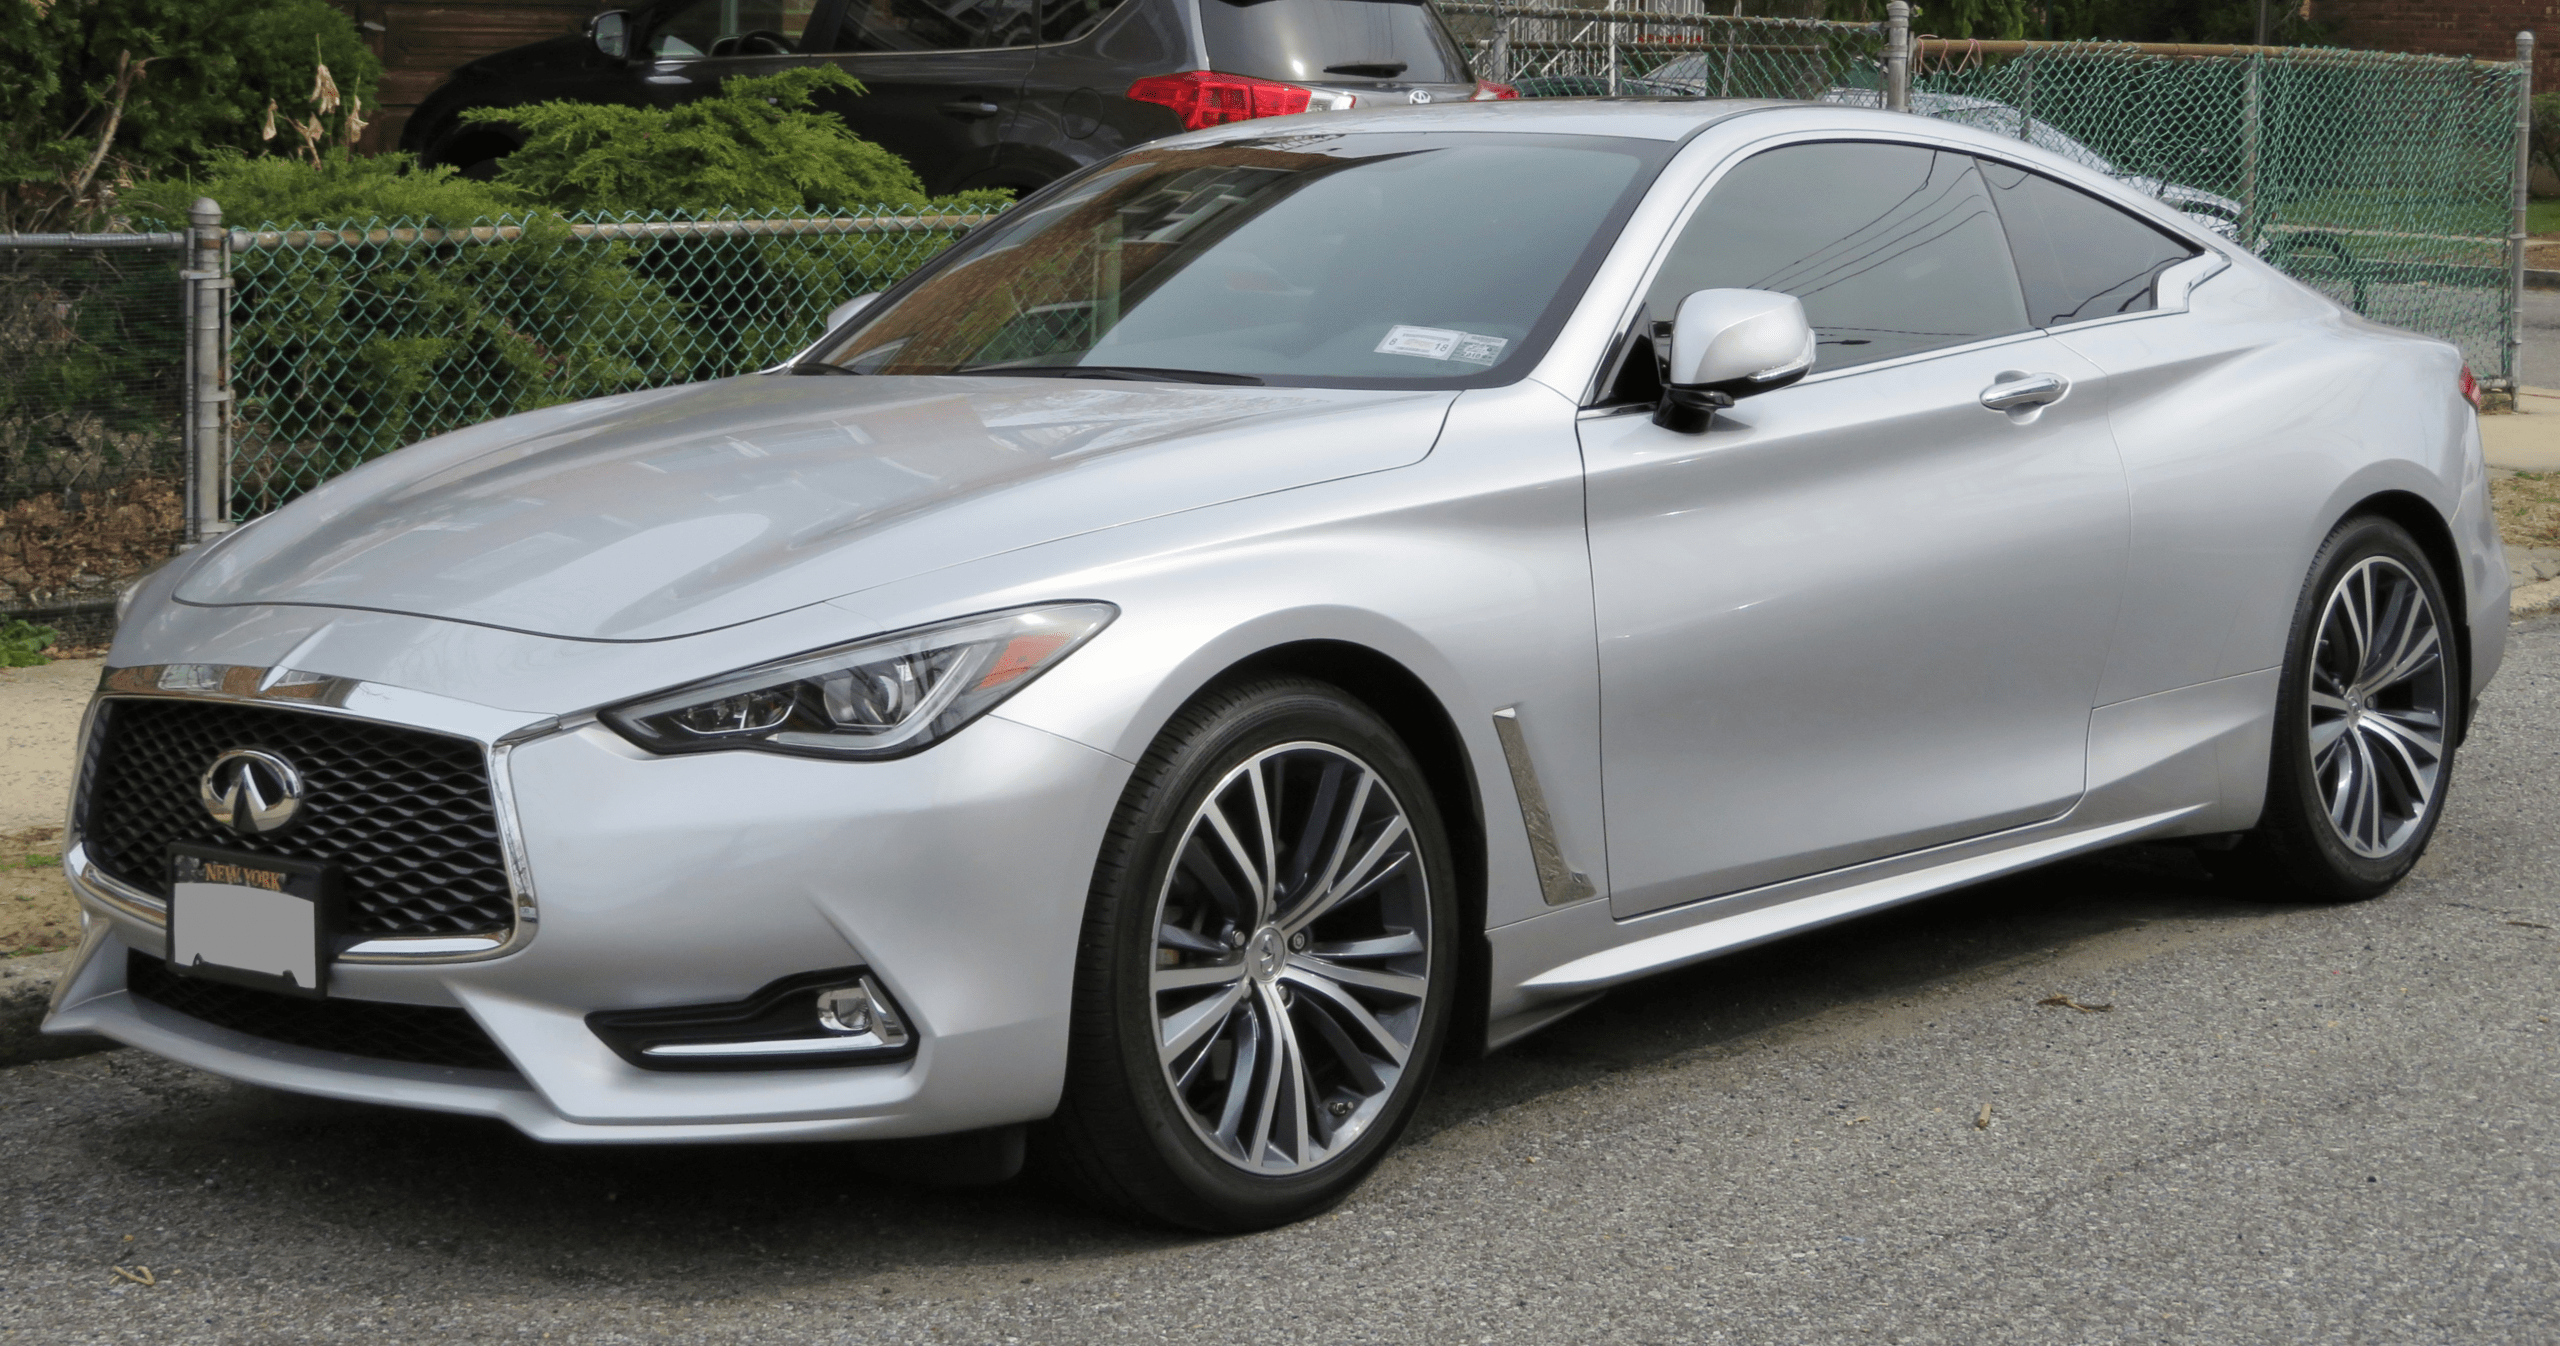 2020 Infiniti Q70 Specs And Review In 2020 Infiniti Coupe New Suv